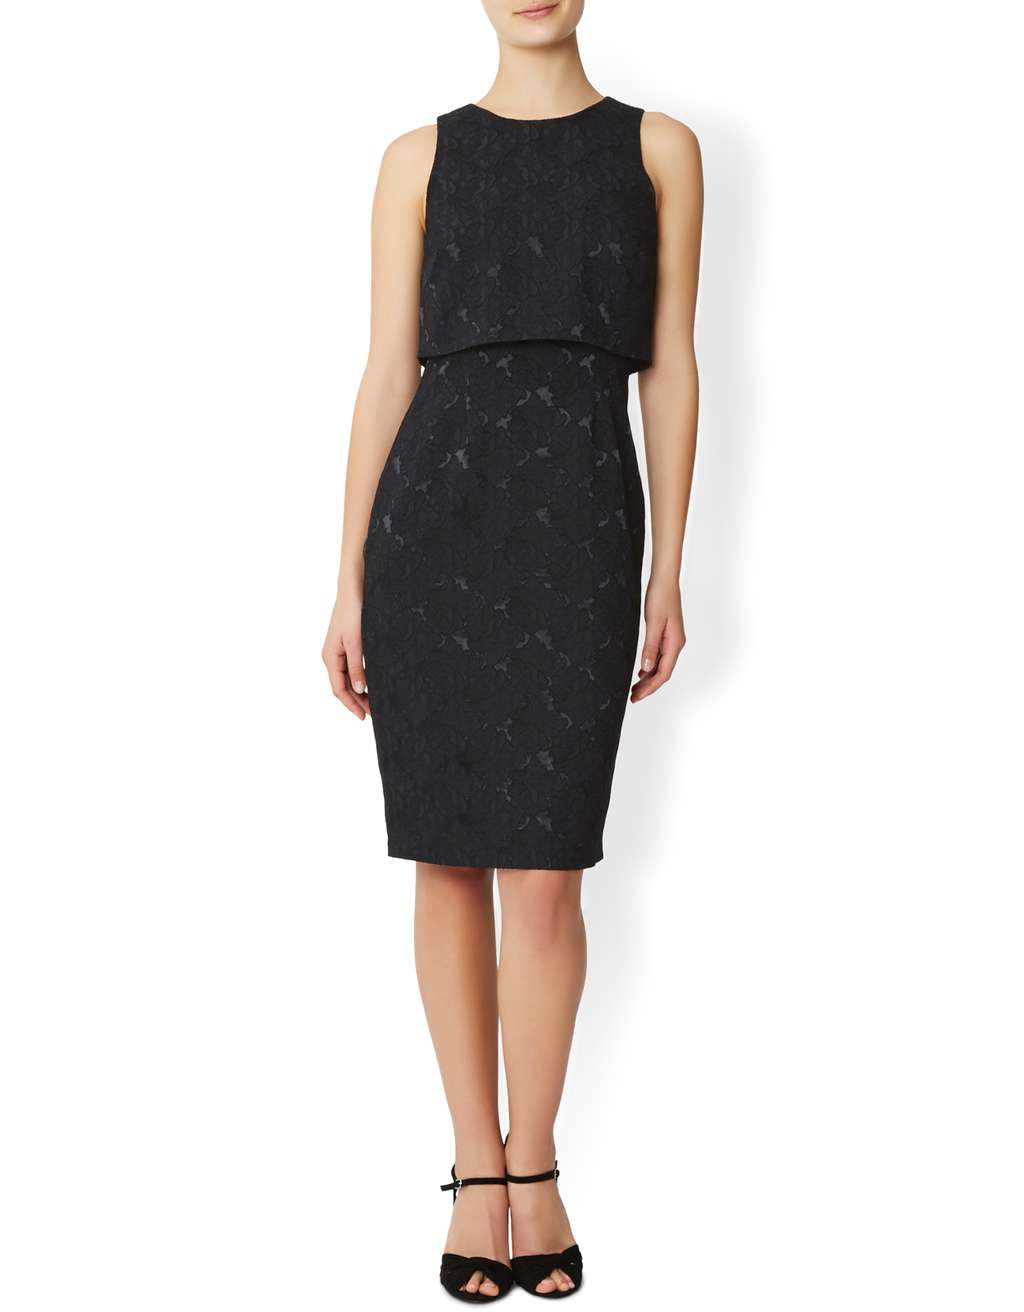 Immy Jacquard Dress - style: shift; fit: tailored/fitted; sleeve style: sleeveless; back detail: back revealing; predominant colour: black; occasions: evening, occasion; length: on the knee; fibres: polyester/polyamide - 100%; neckline: crew; sleeve length: sleeveless; pattern type: fabric; pattern size: light/subtle; pattern: florals; texture group: brocade/jacquard; season: s/s 2016; wardrobe: event